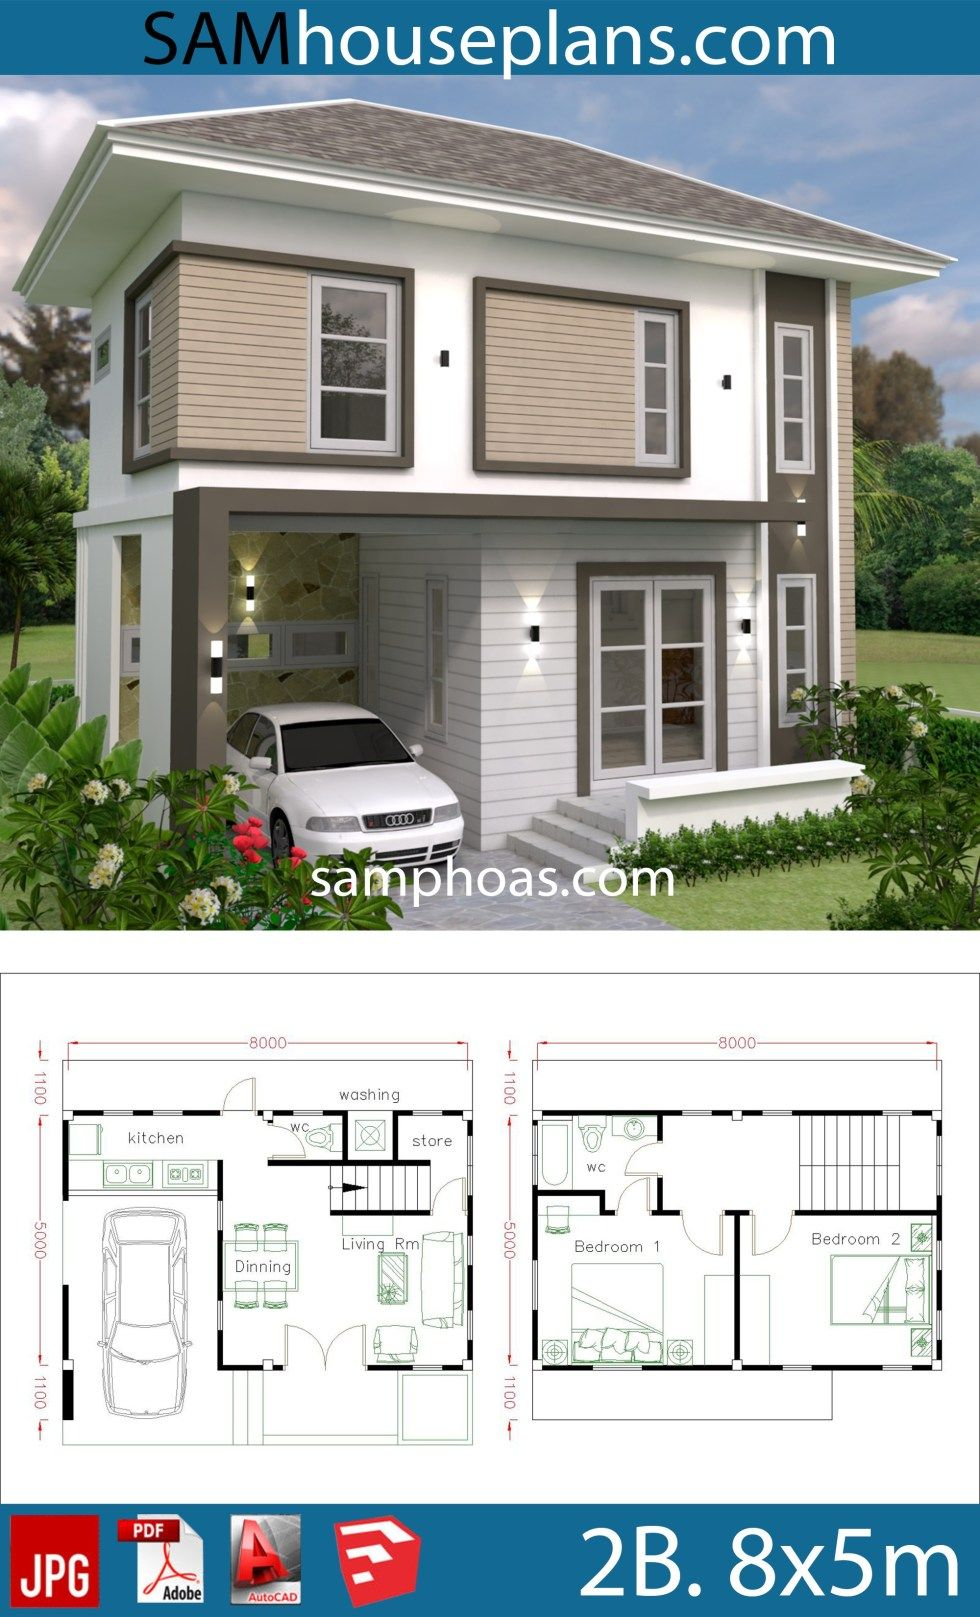 Small Home Design Plan 8x5m With 2 Bedrooms Sam House Plans Modern Small House Design Small House Design Home Design Plan